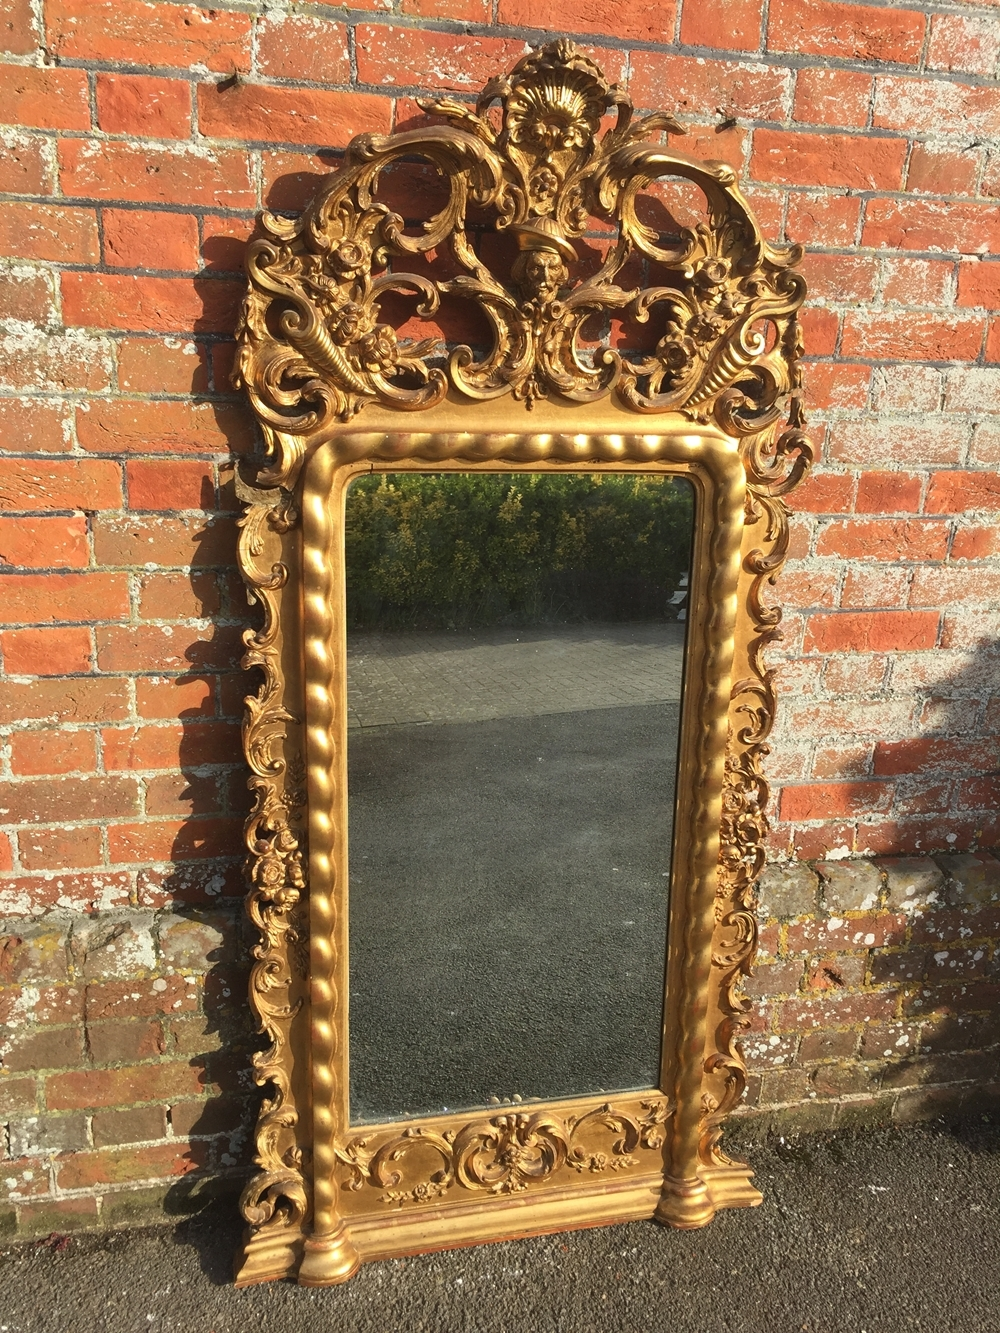 Large Overmantle Mirrors Uk Antique Overmantle Mirrors For Sale Regarding French Antique Mirrors For Sale (Image 13 of 15)